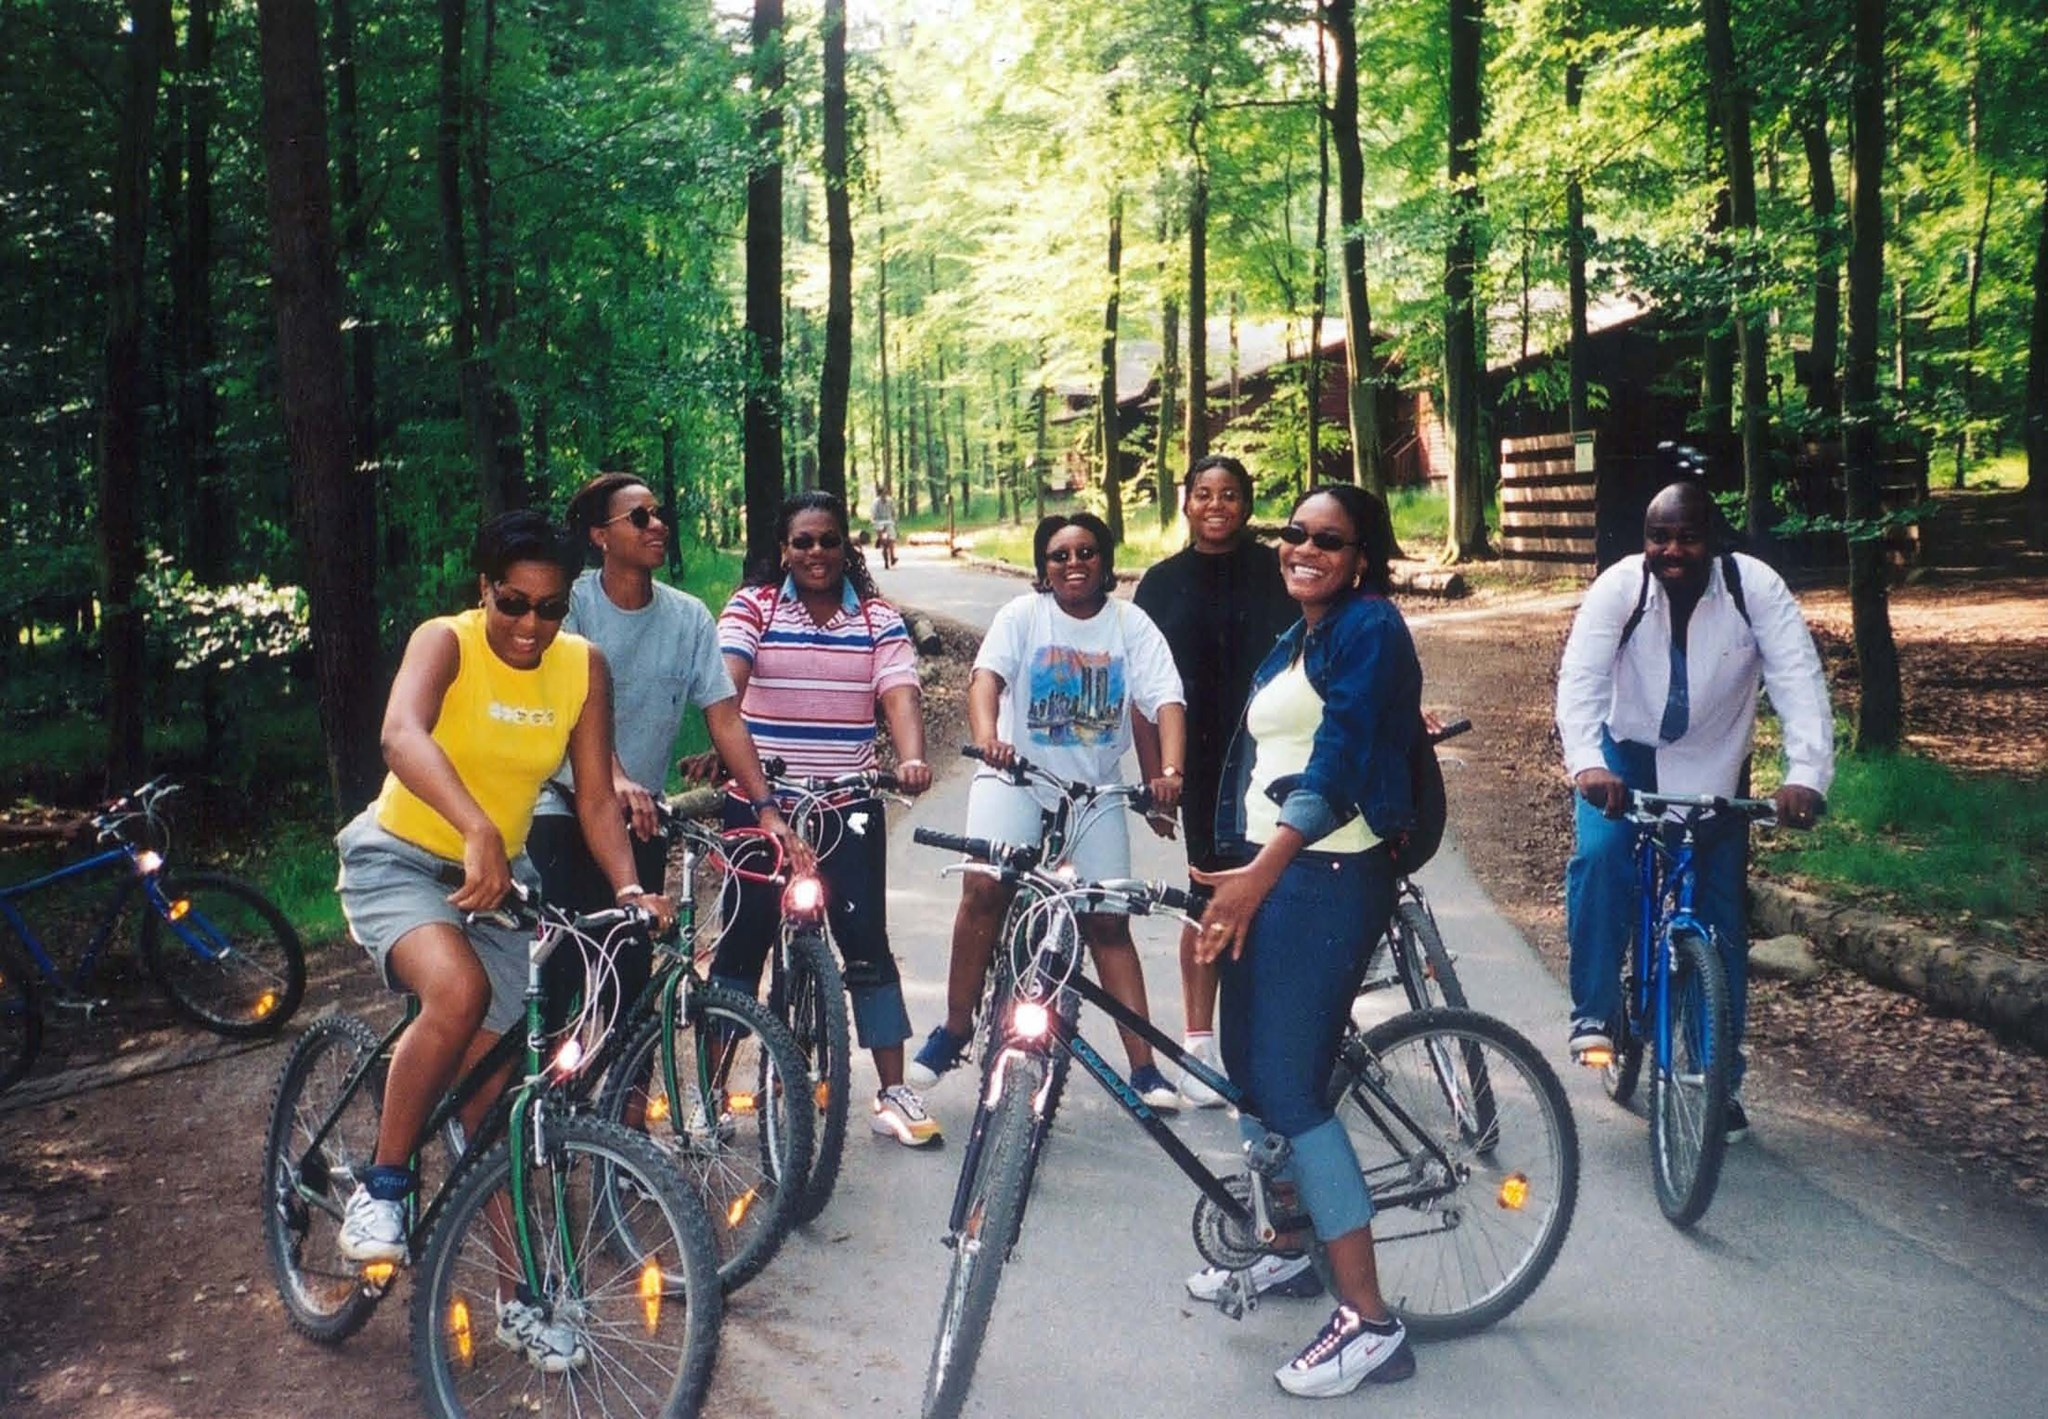 Lake District, England - Ijeoma, Nwamaka, Kech, Uzo,Tony,Ngozi, Ikunna